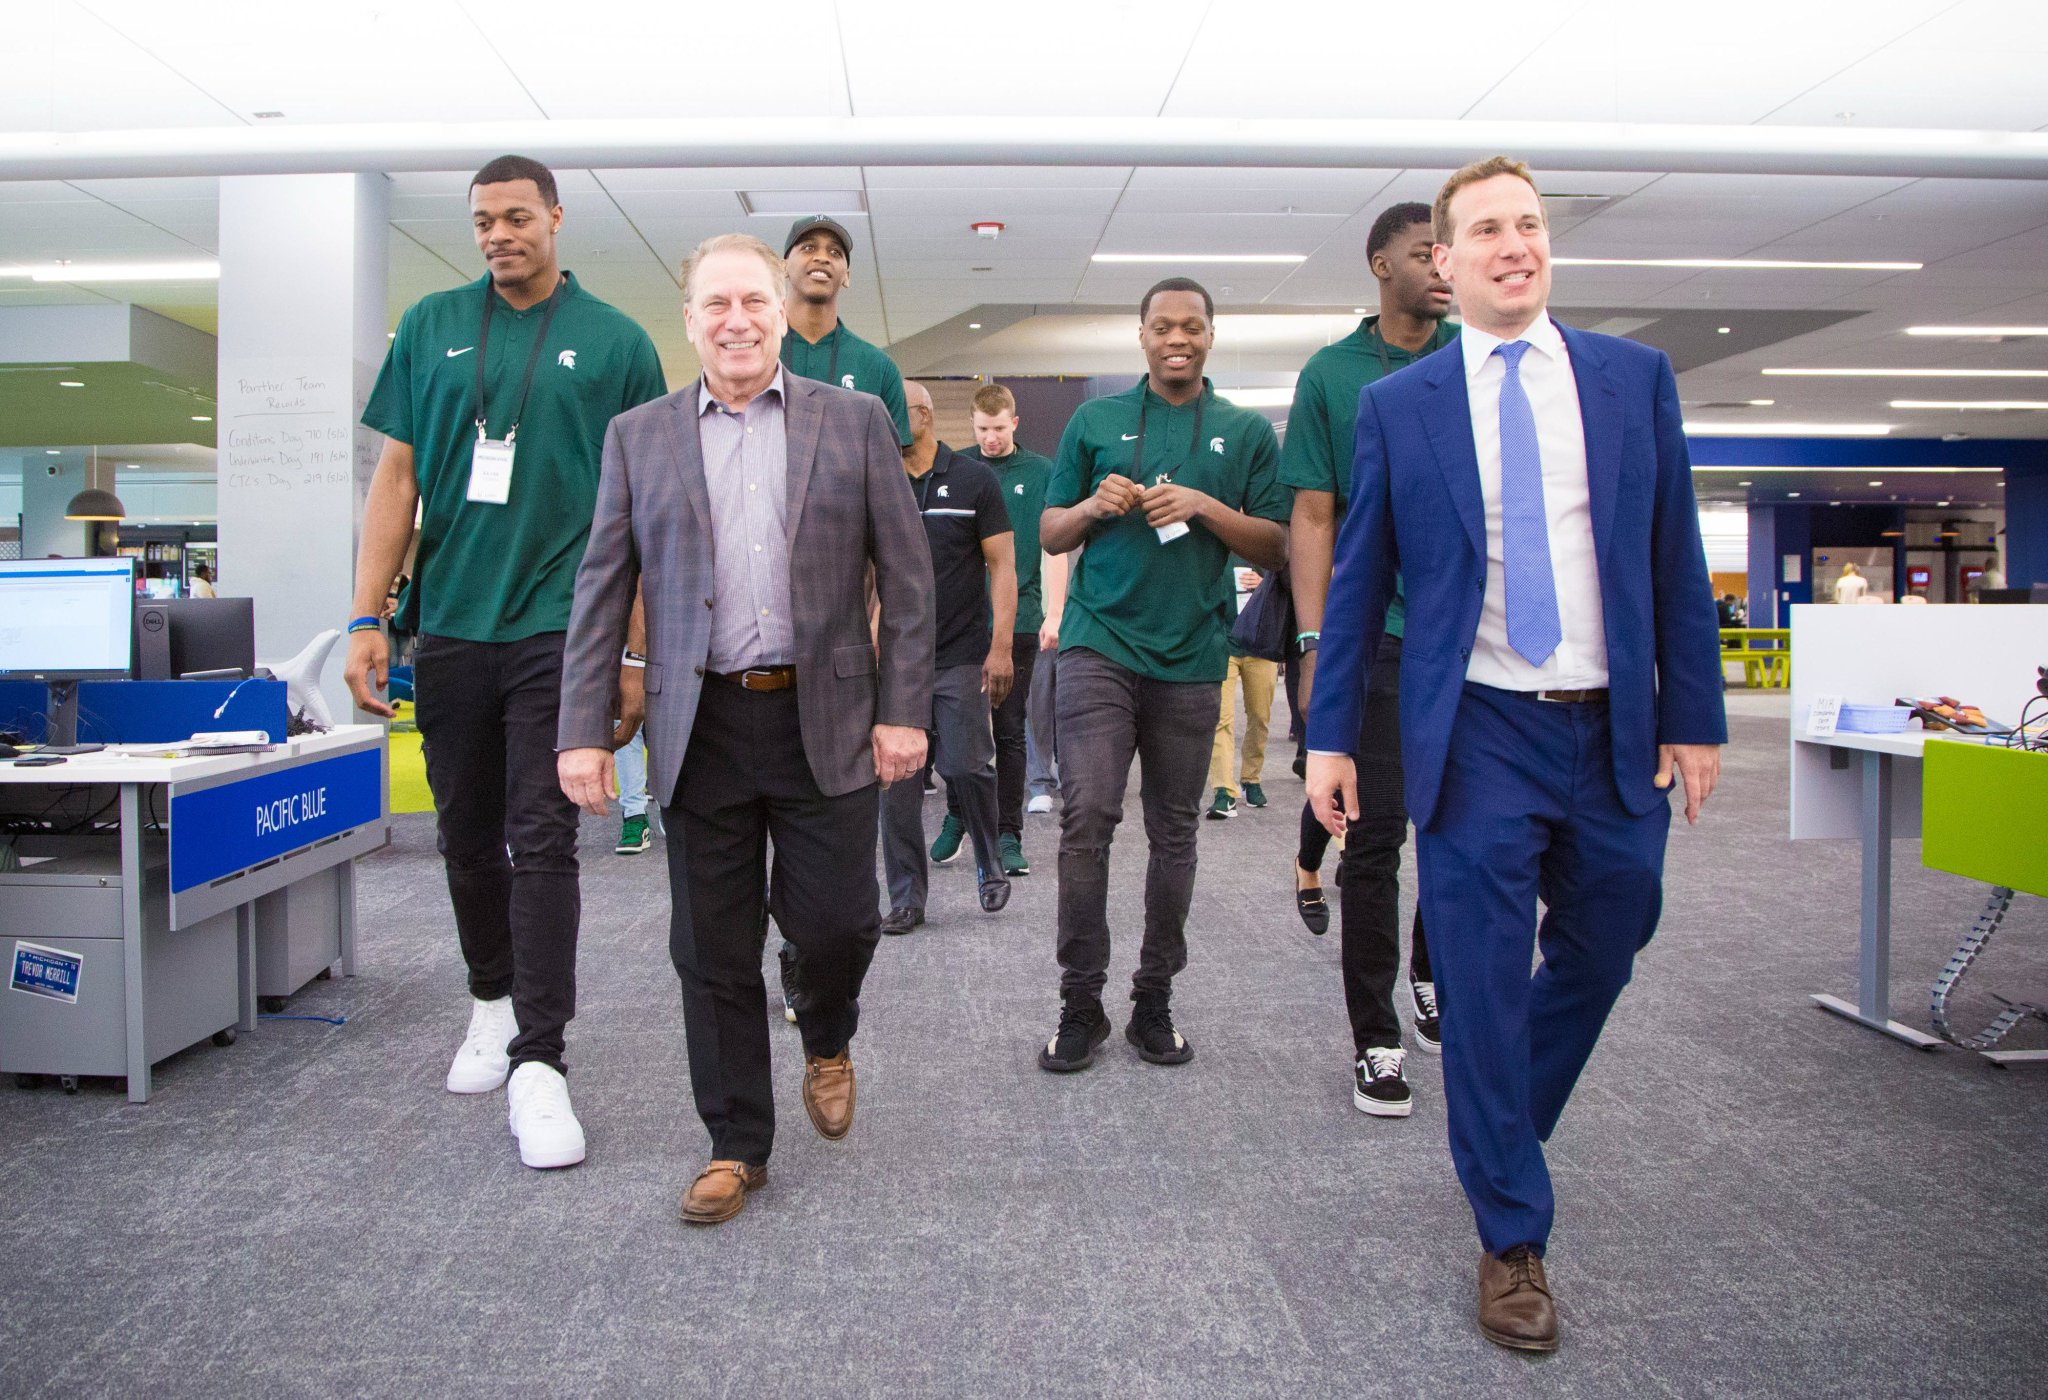 Mat Ishbia On Twitter Thank You To Tom Izzo The Msu Men S Basketball Team For Spending The Afternoon With Us At Uwmlending Coach Izzo S Program Has Shaped How Uwm Is Run